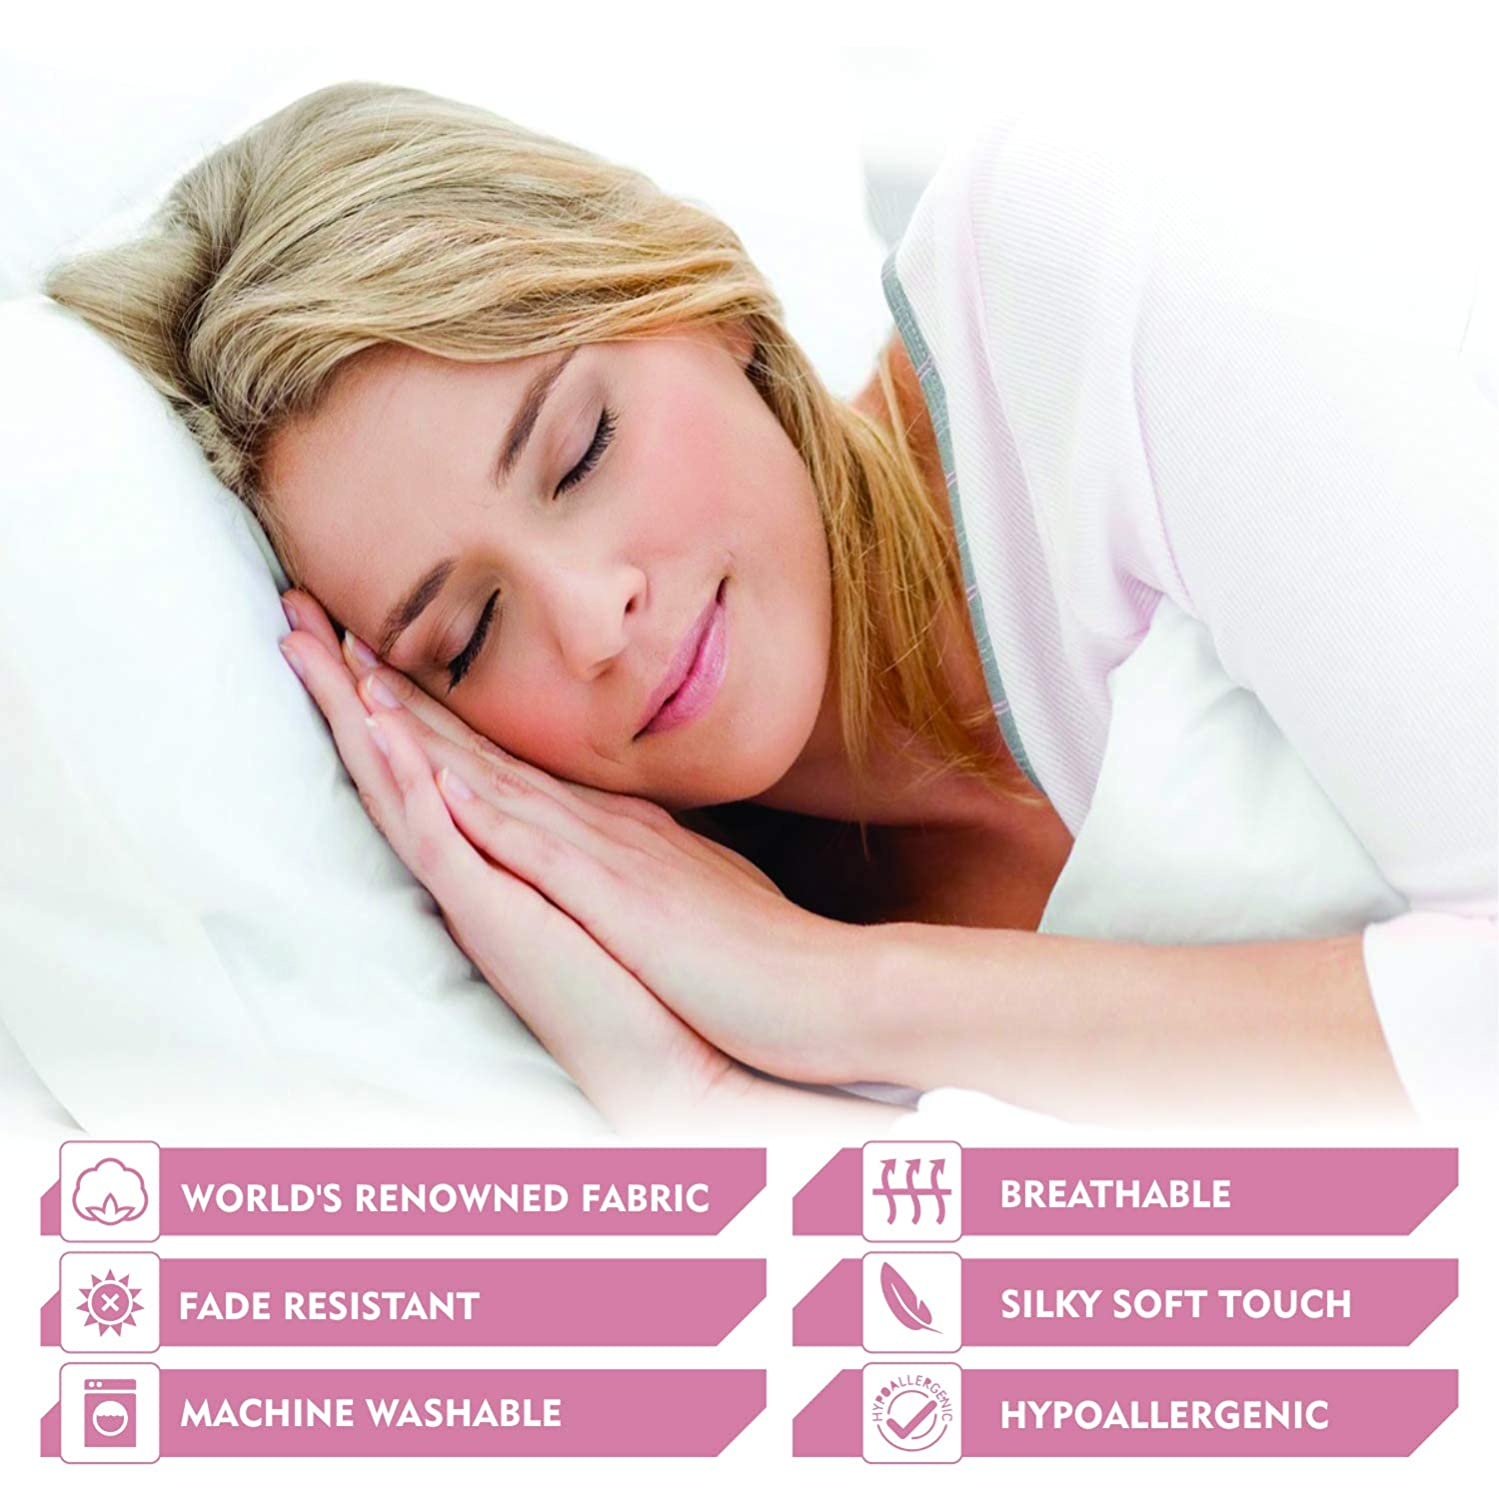 King-White Bedding Homes LUXURIOUS BEDDING COLLECTION!Premium Quality GOTS Certified 2 Pc Pillowcases,800 TC Pillow cover set made of 100/% Organic,Eco-friendly and Natural Cotton